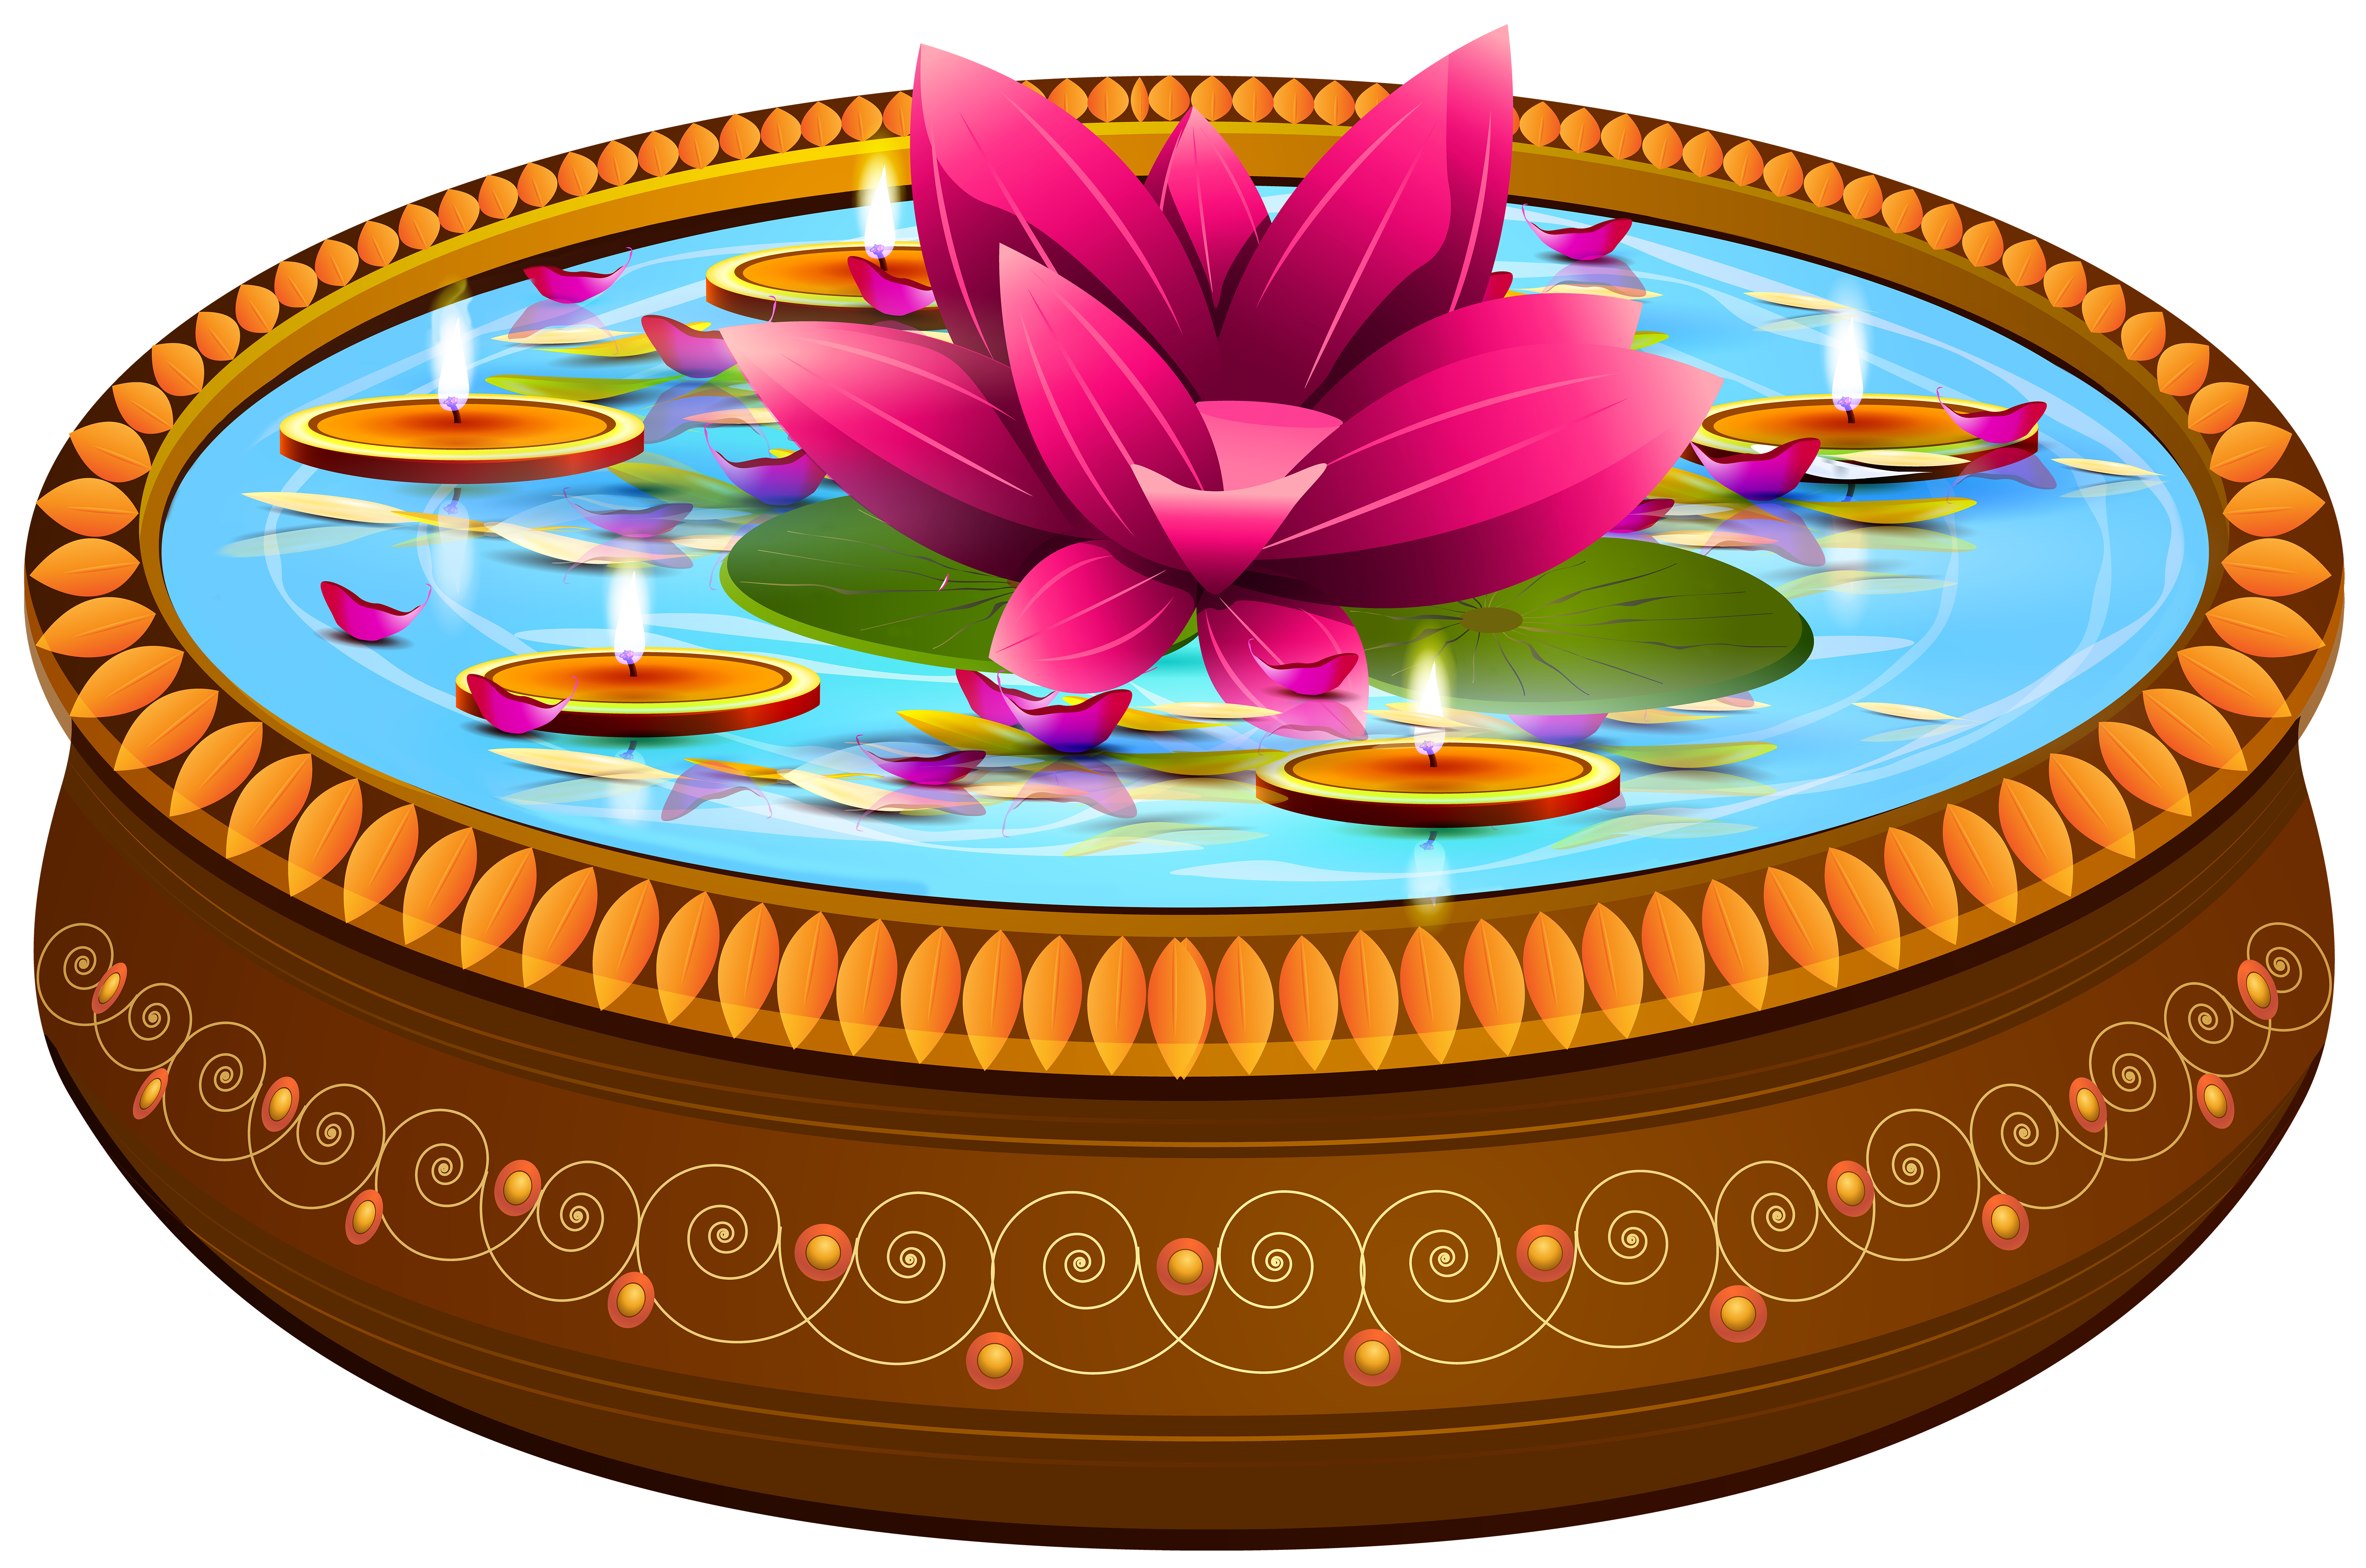 Indian Floating Candles and Lotus Transparent Clip Art Image.